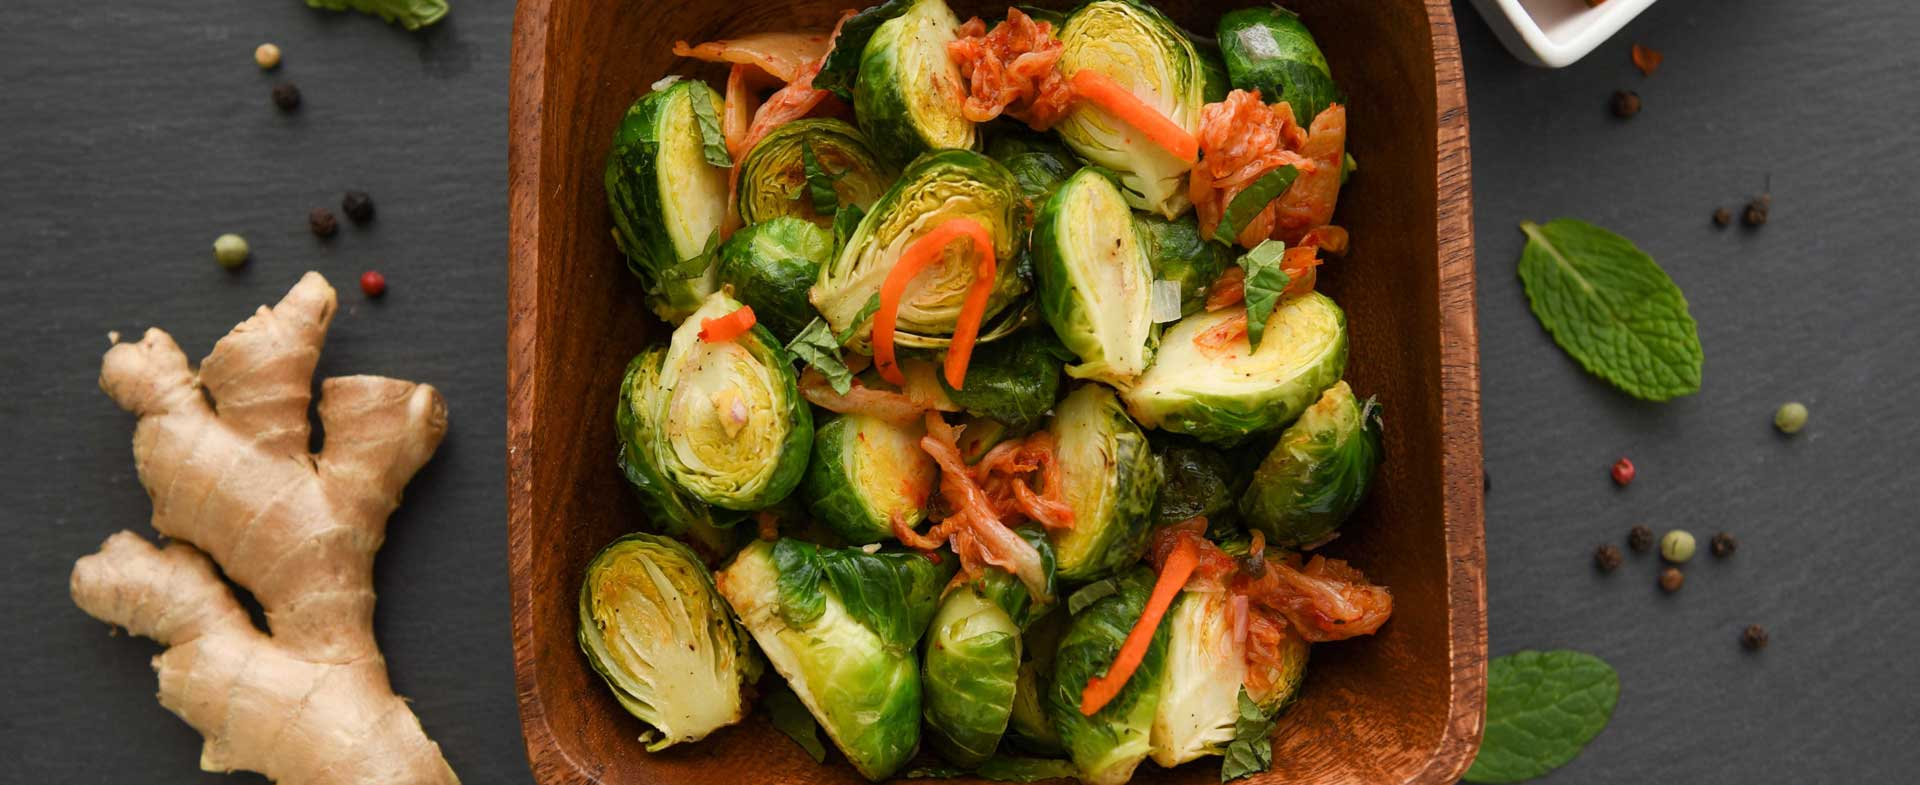 Ginger Brussels Sprouts with Kimchi